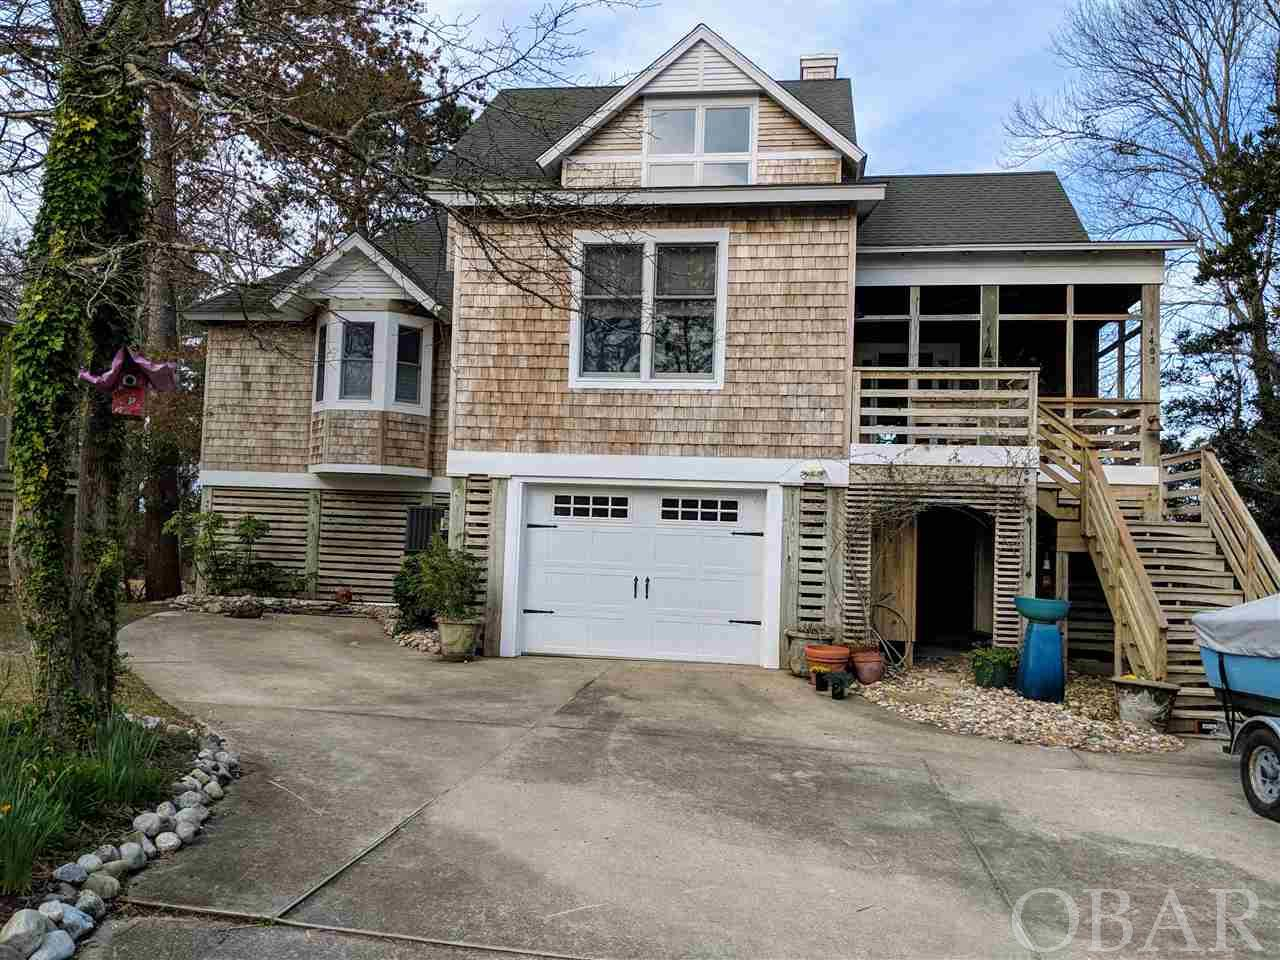 1402 First Street, Kill Devil Hills, NC 27948, 4 Bedrooms Bedrooms, ,3 BathroomsBathrooms,Residential,For sale,First Street,103935